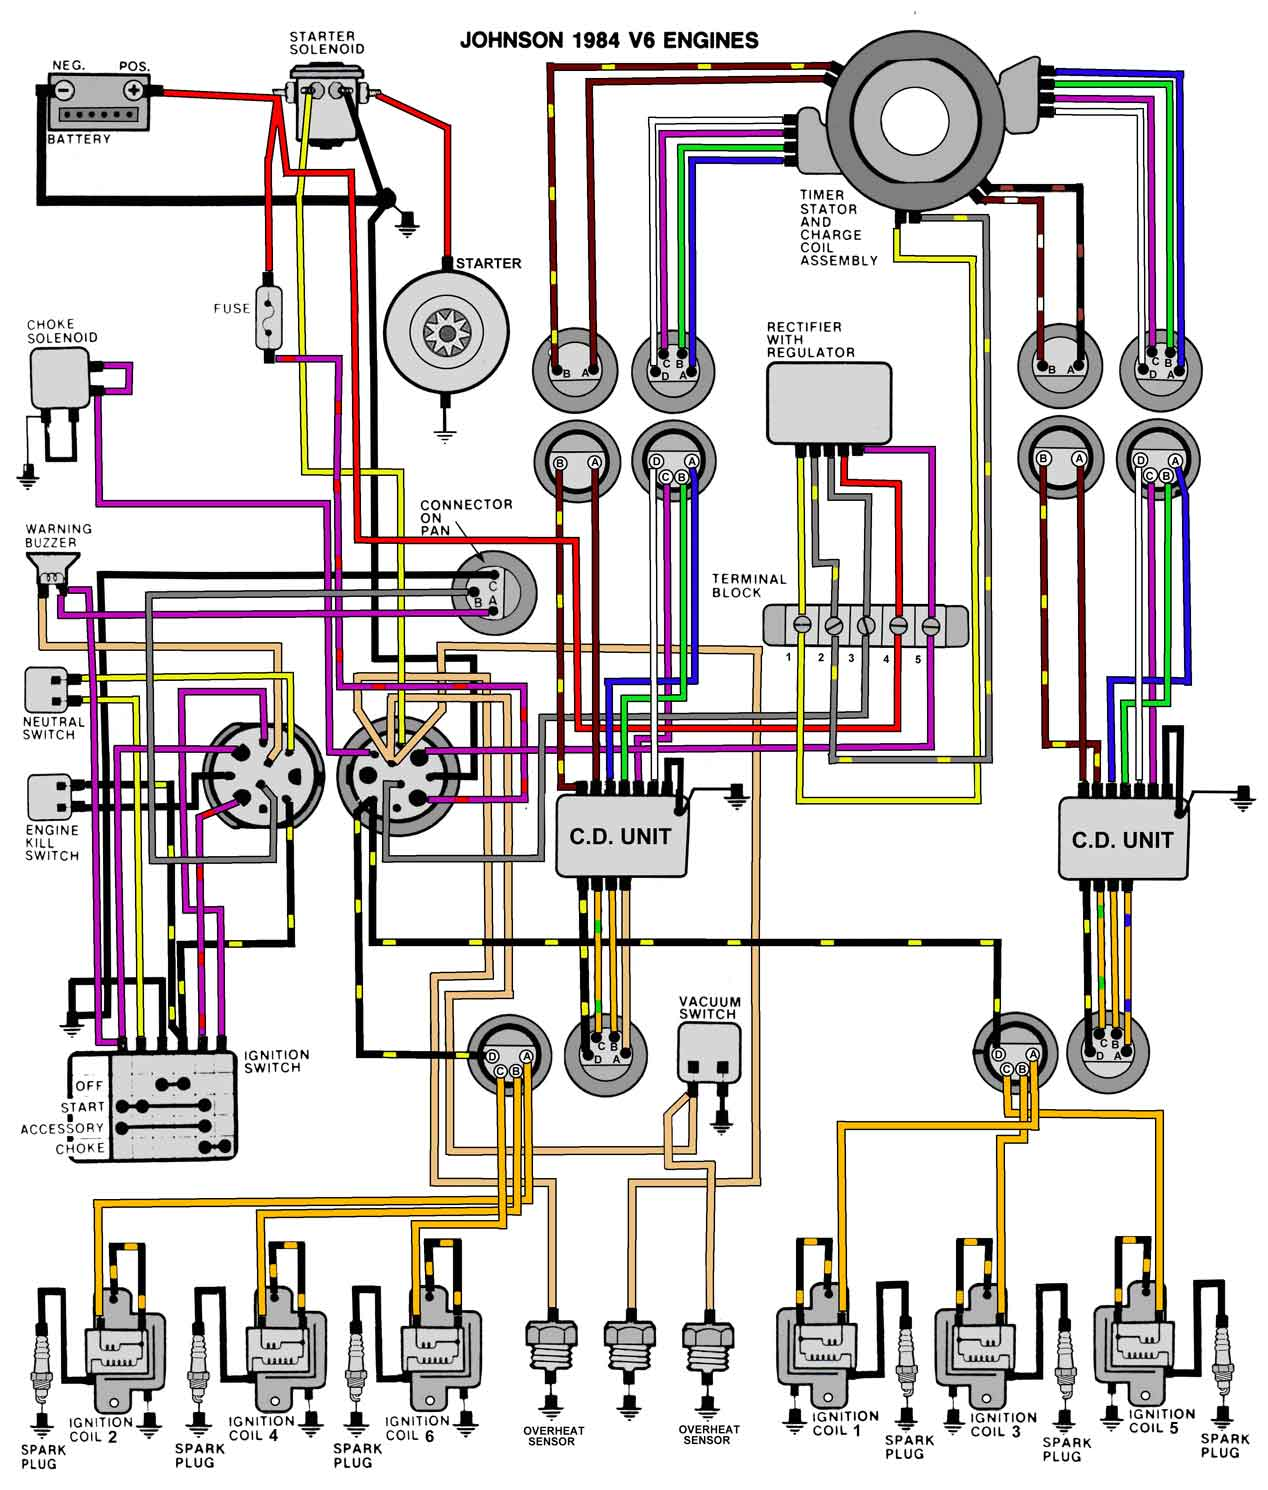 84_V6 mastertech marine evinrude johnson outboard wiring diagrams  at eliteediting.co